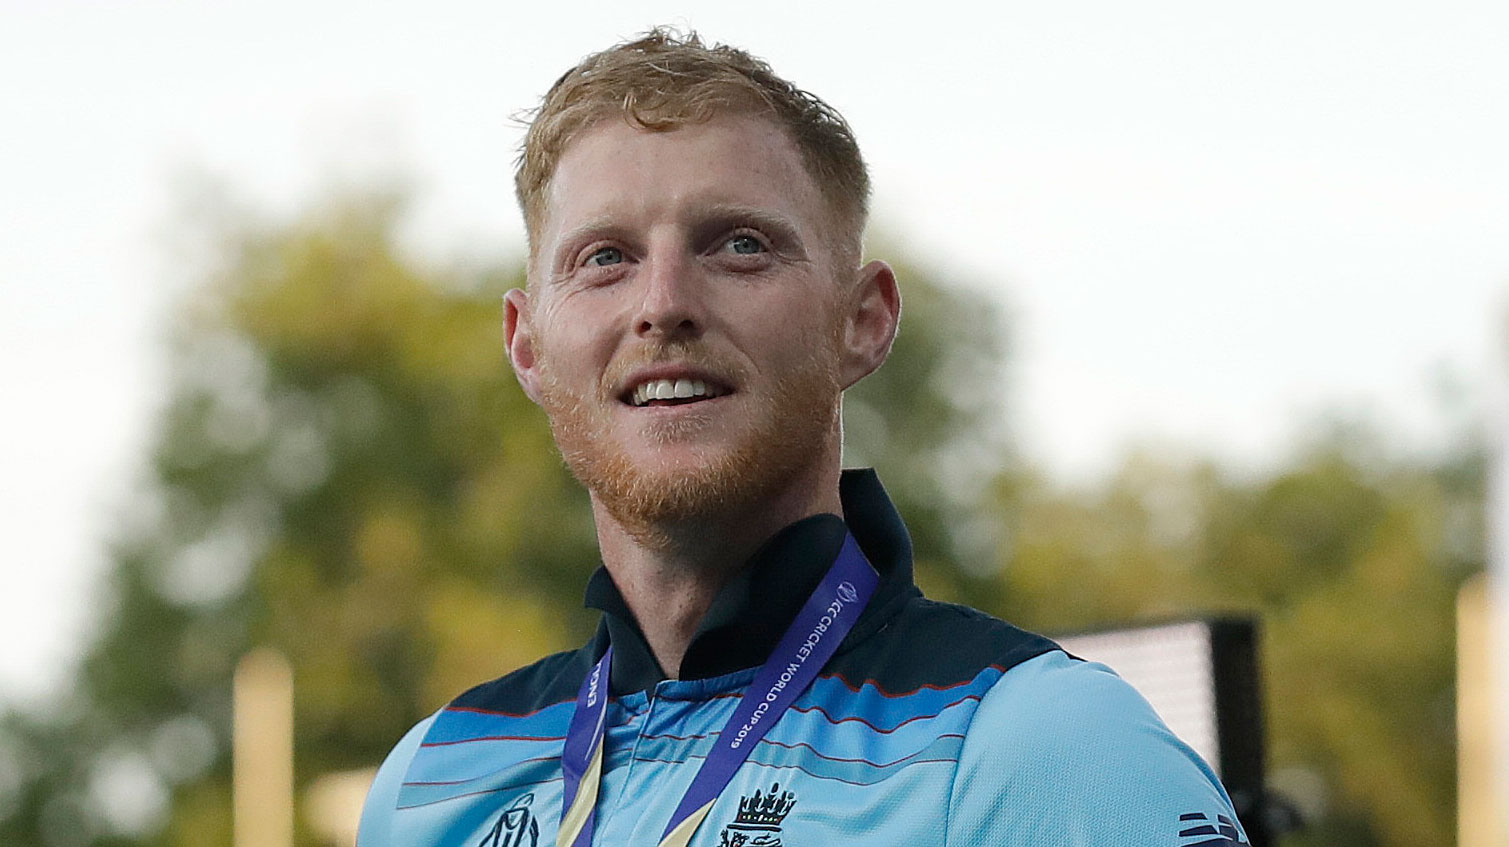 Ben Stokes's match-winning turn at the crease in the third Test match of the Ashes at Headingley was magical.